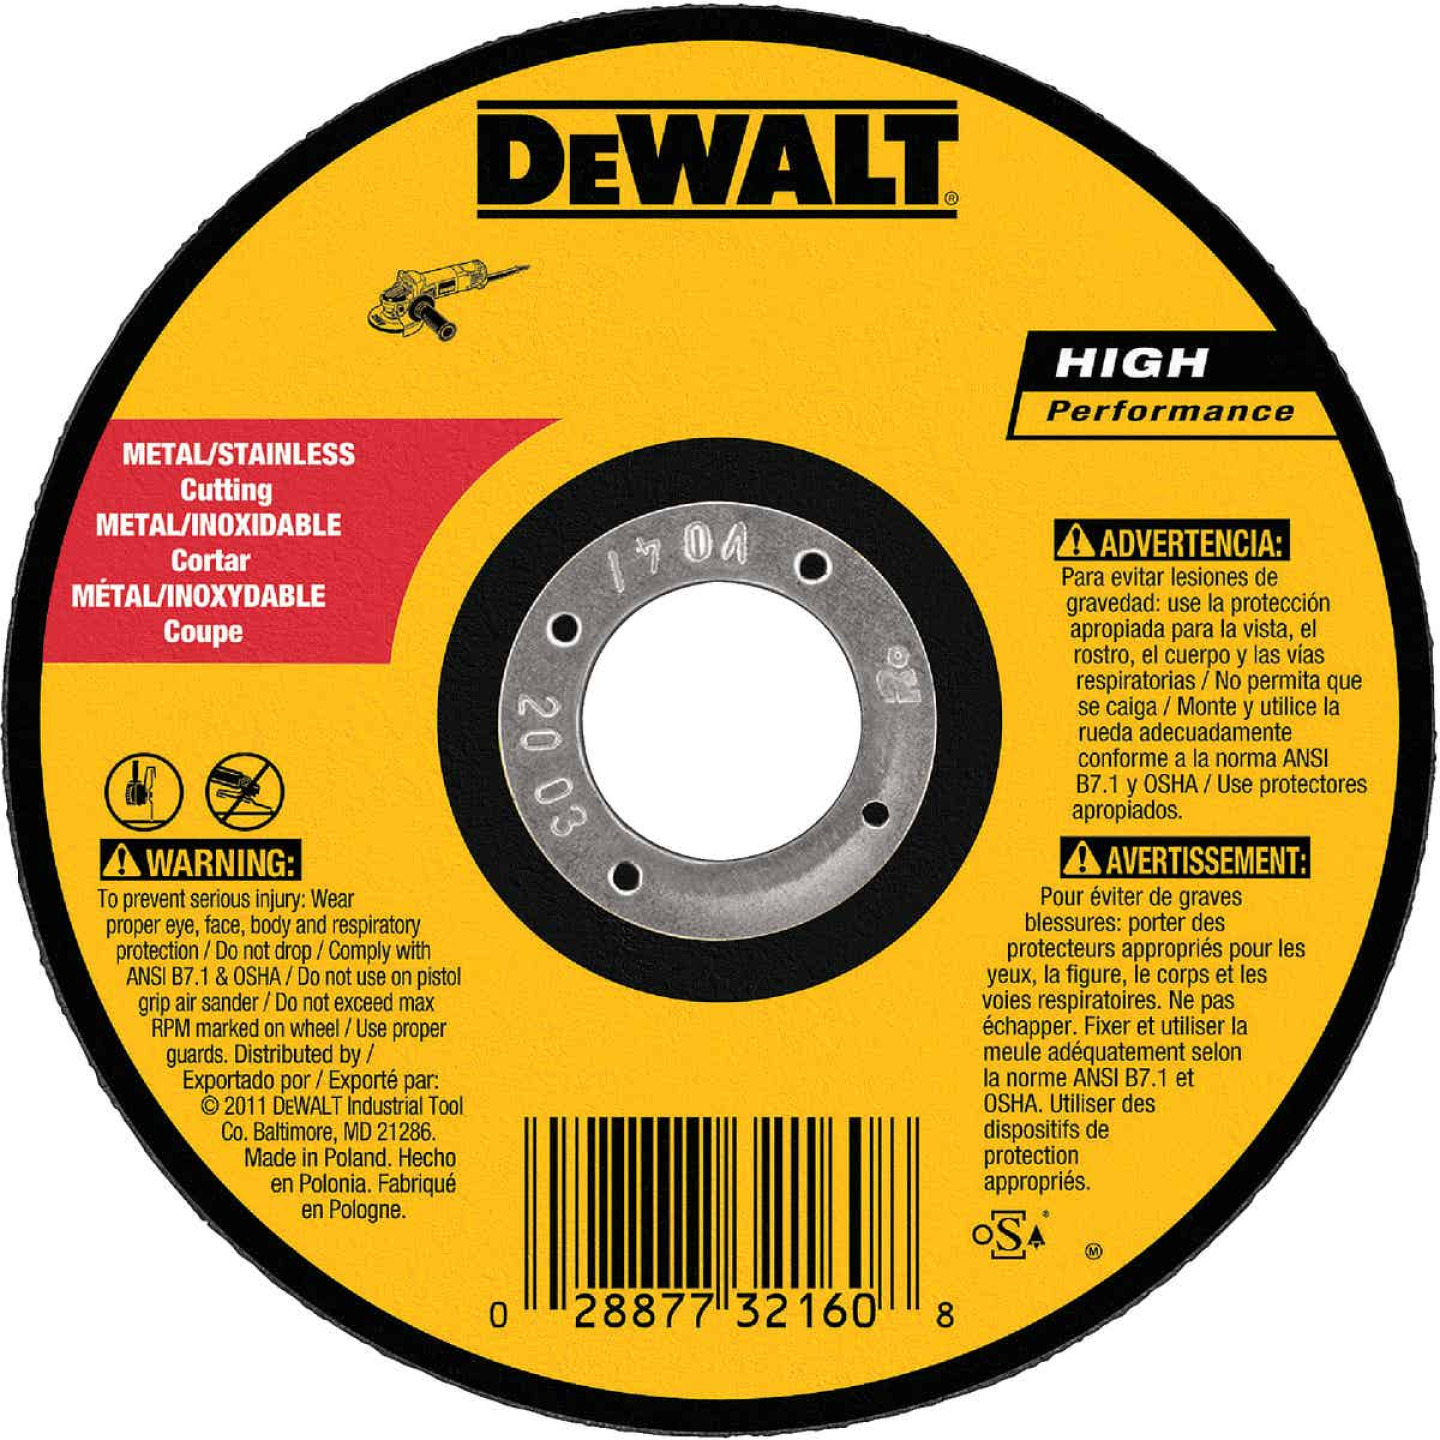 DeWalt HP Type 1 5 In. x 0.045 In. x 7/8 In. Metal/Stainless Cut-Off Wheel Image 1